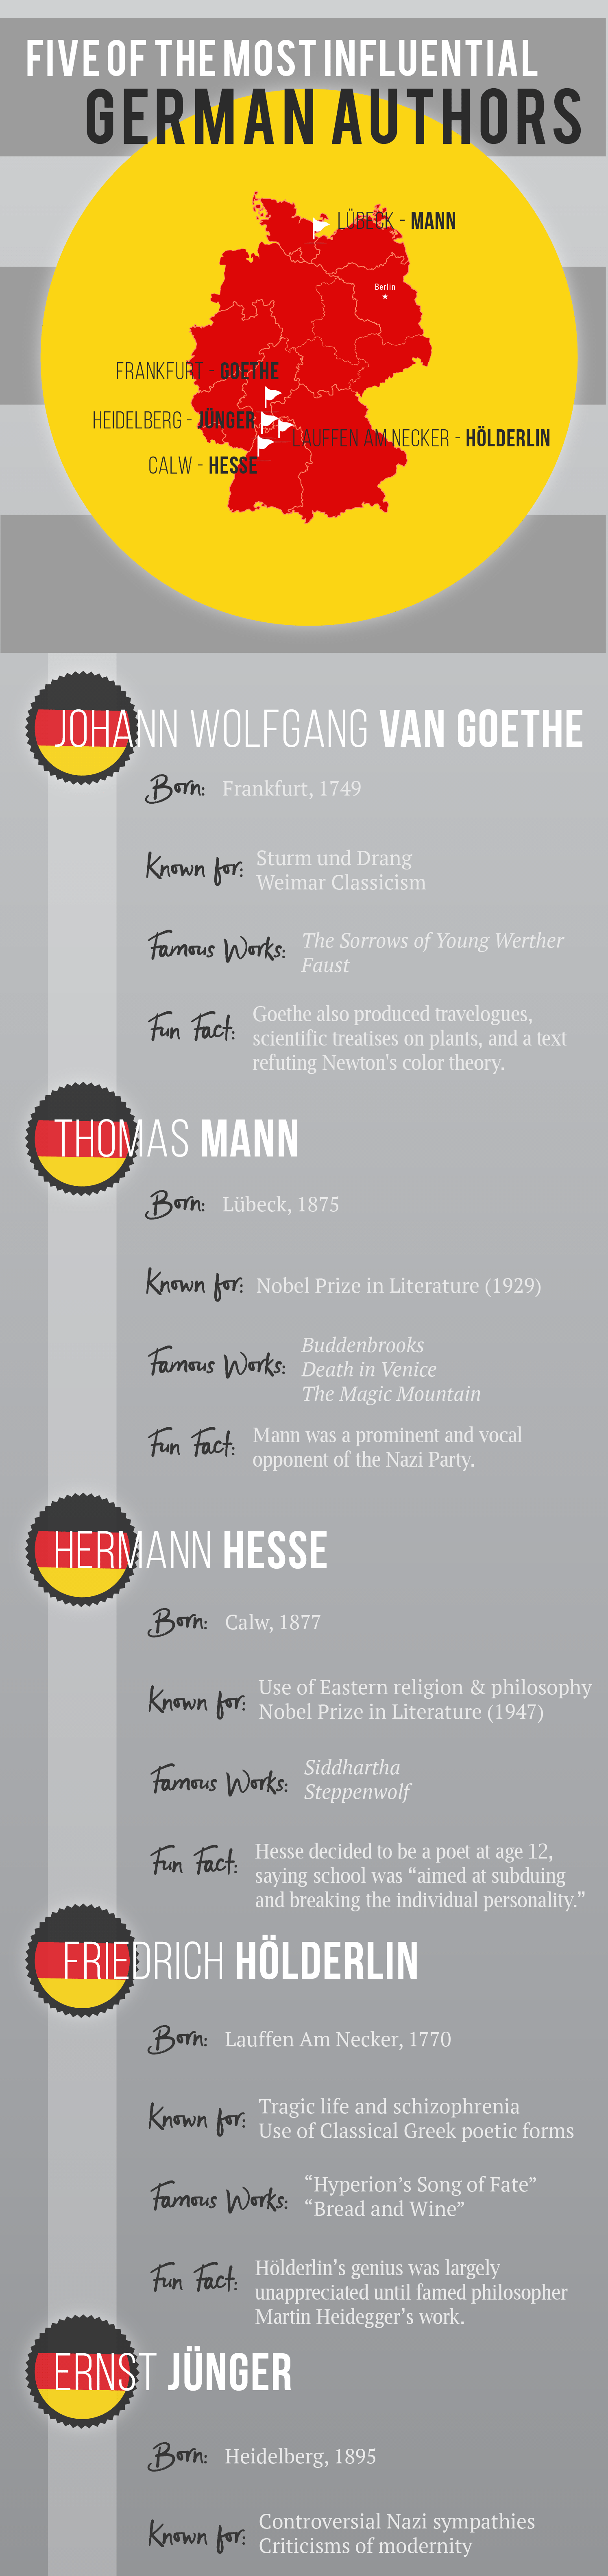 Five of the Best German Authors Infographic by Books on the Wall-8